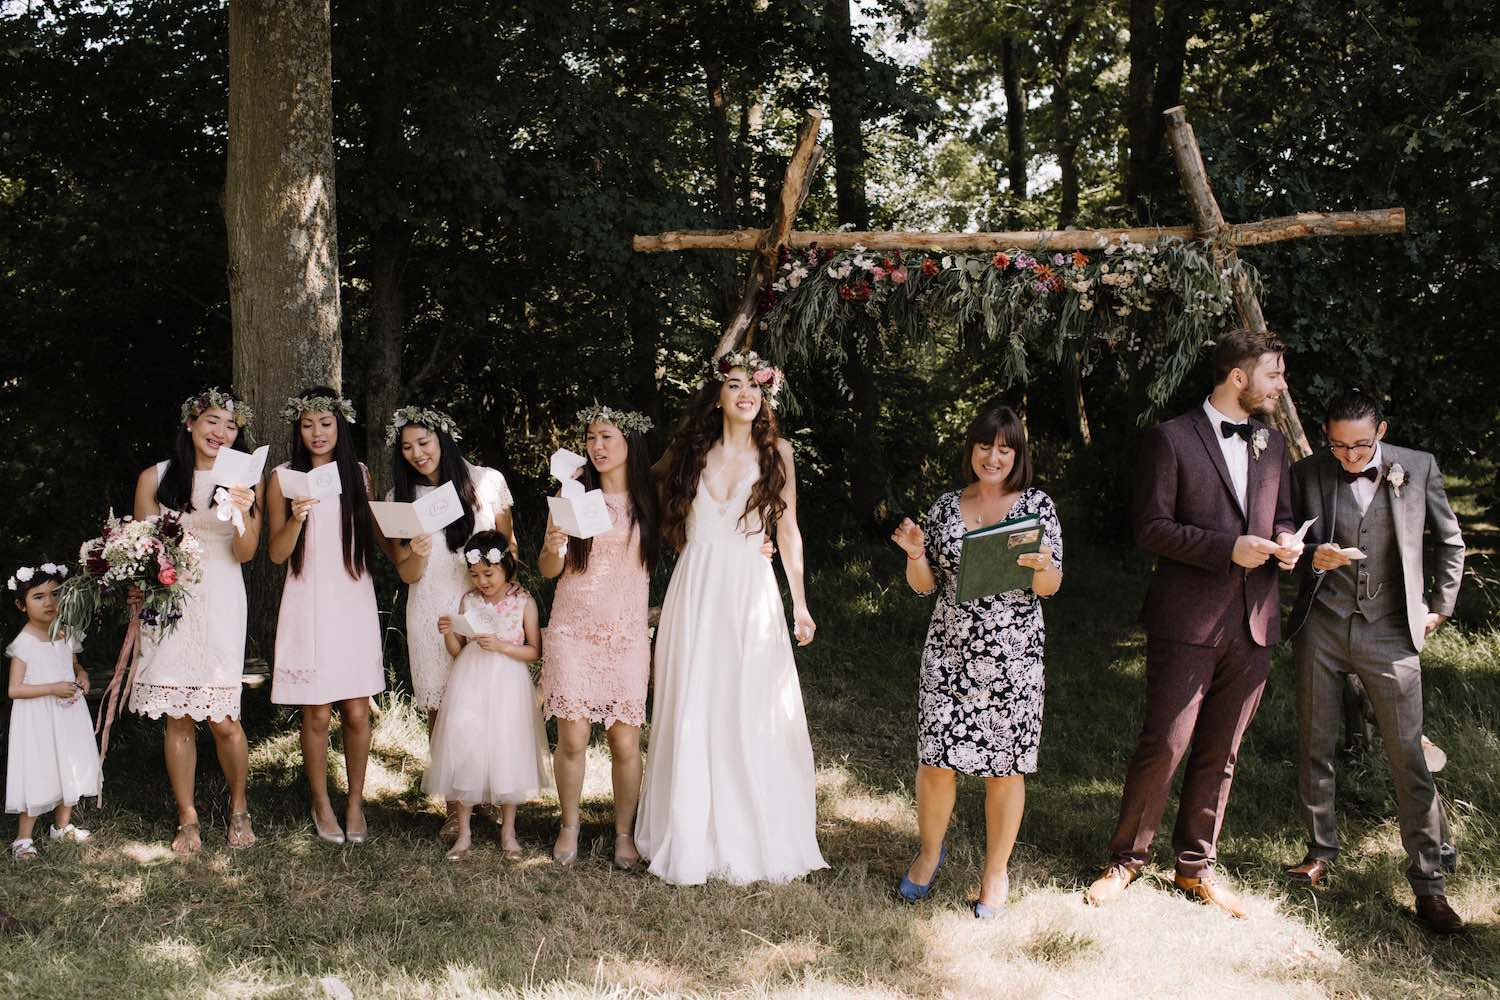 Family in woodland wedding ceremony